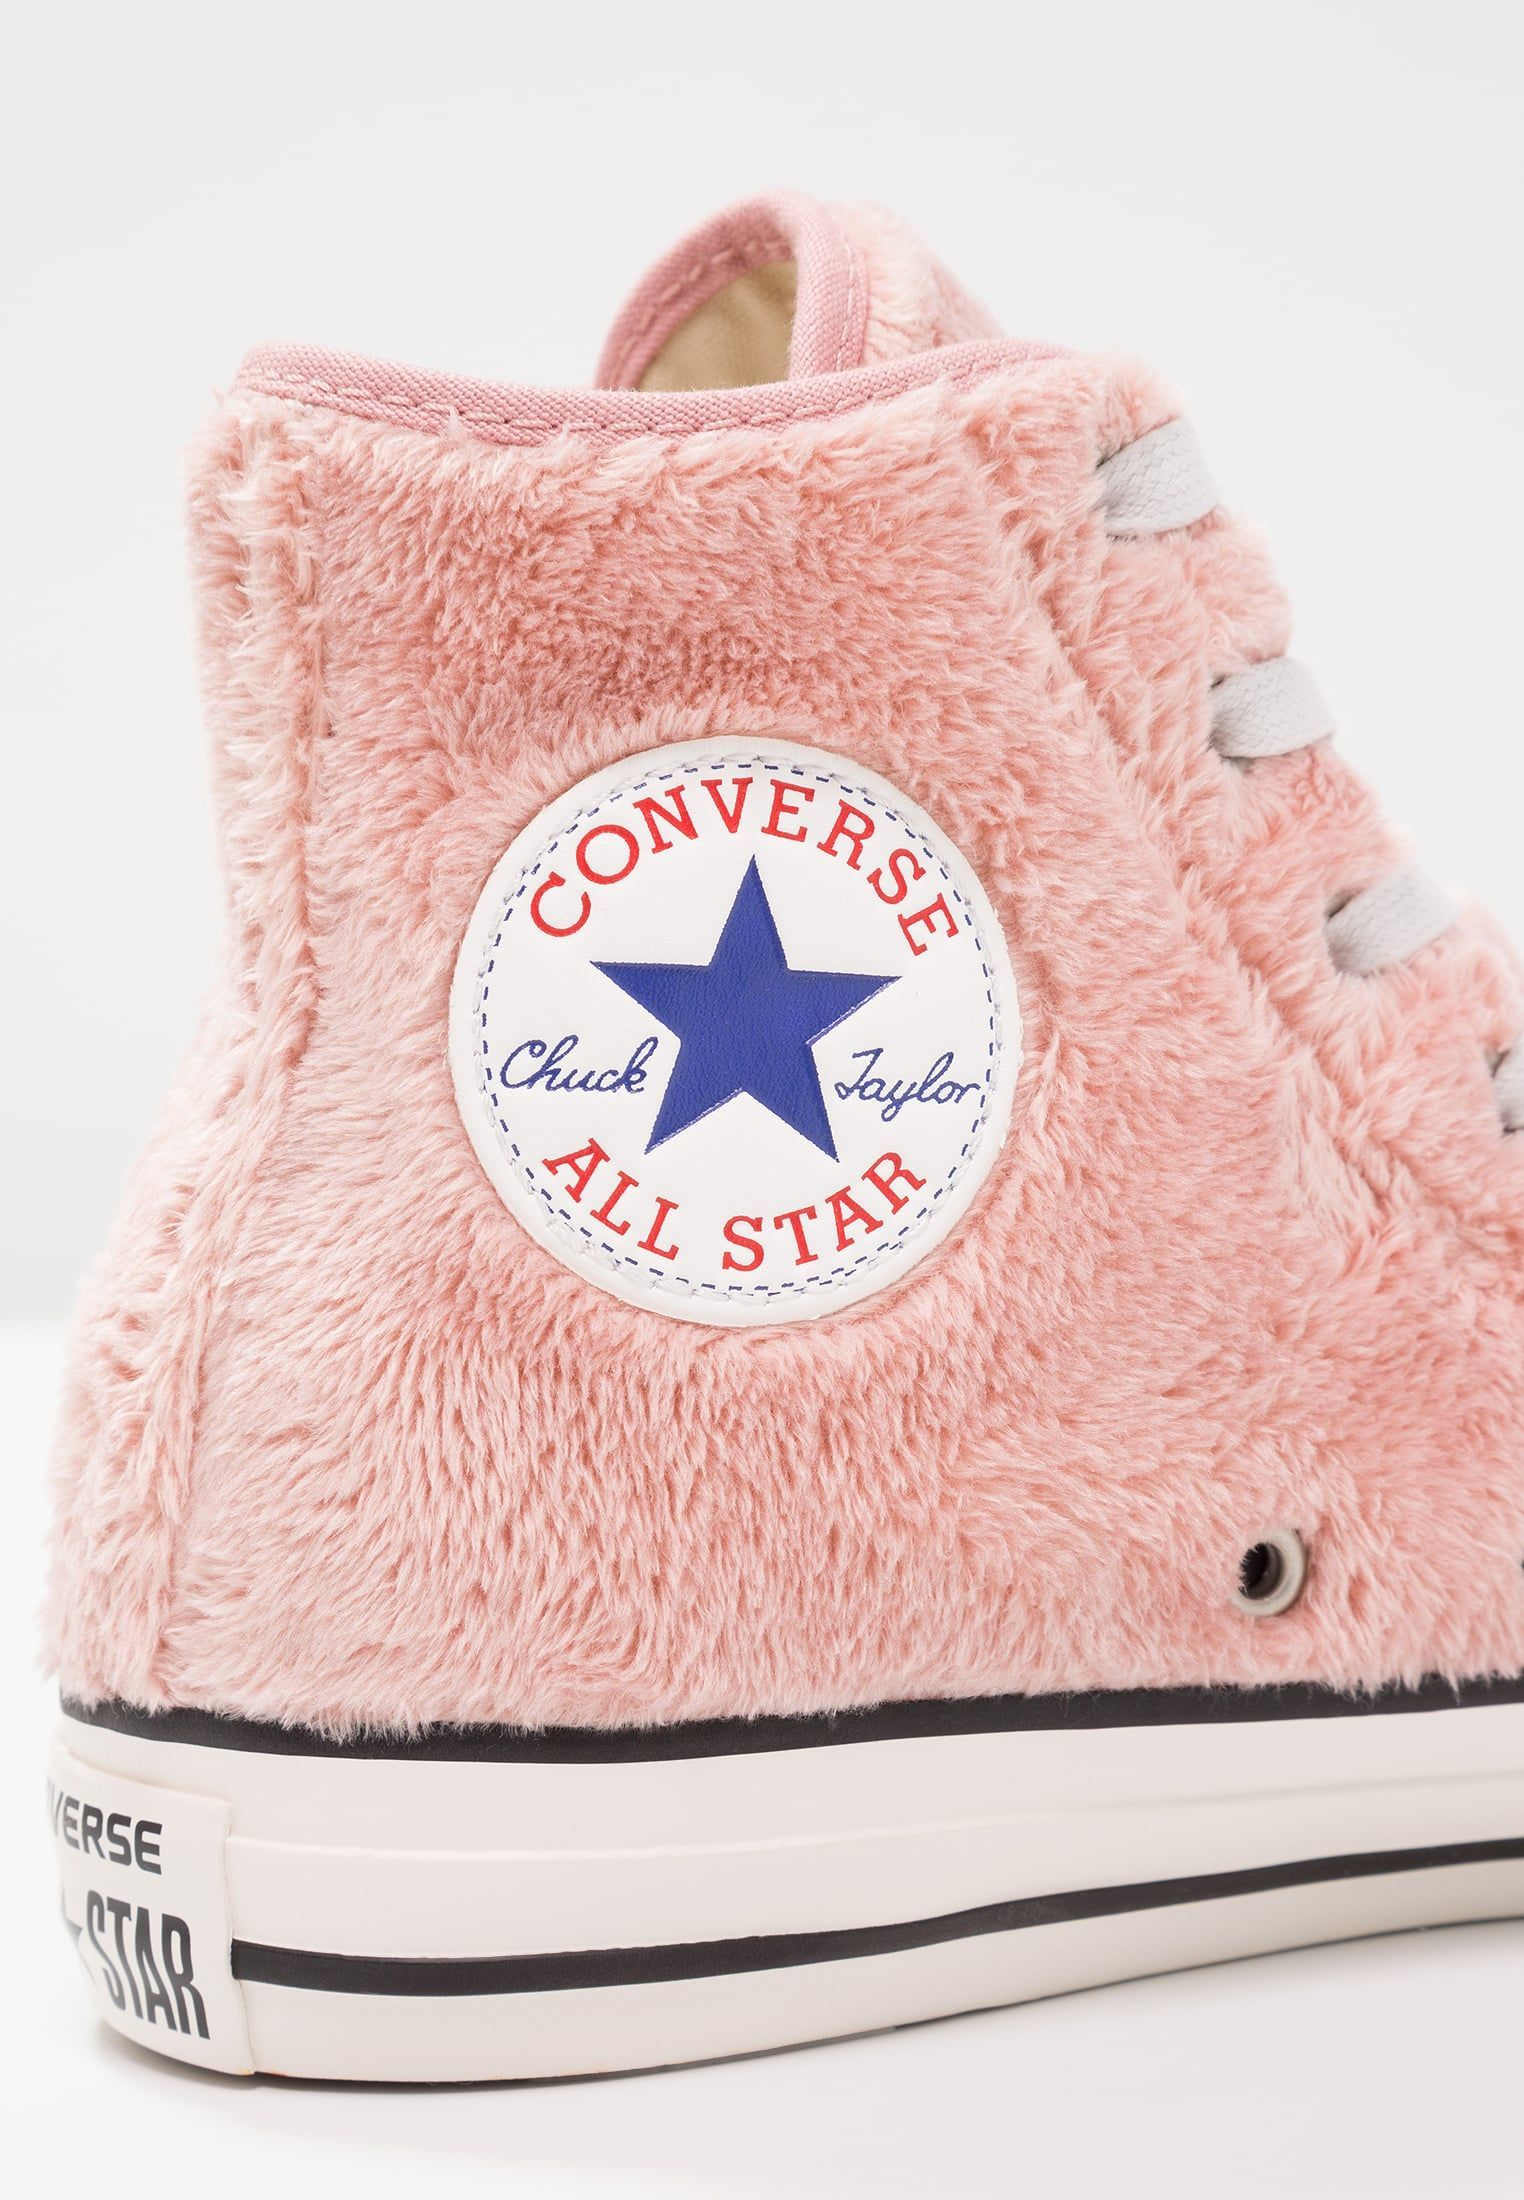 converseshoes on | Converse schuhe, Converse chucks, Converse